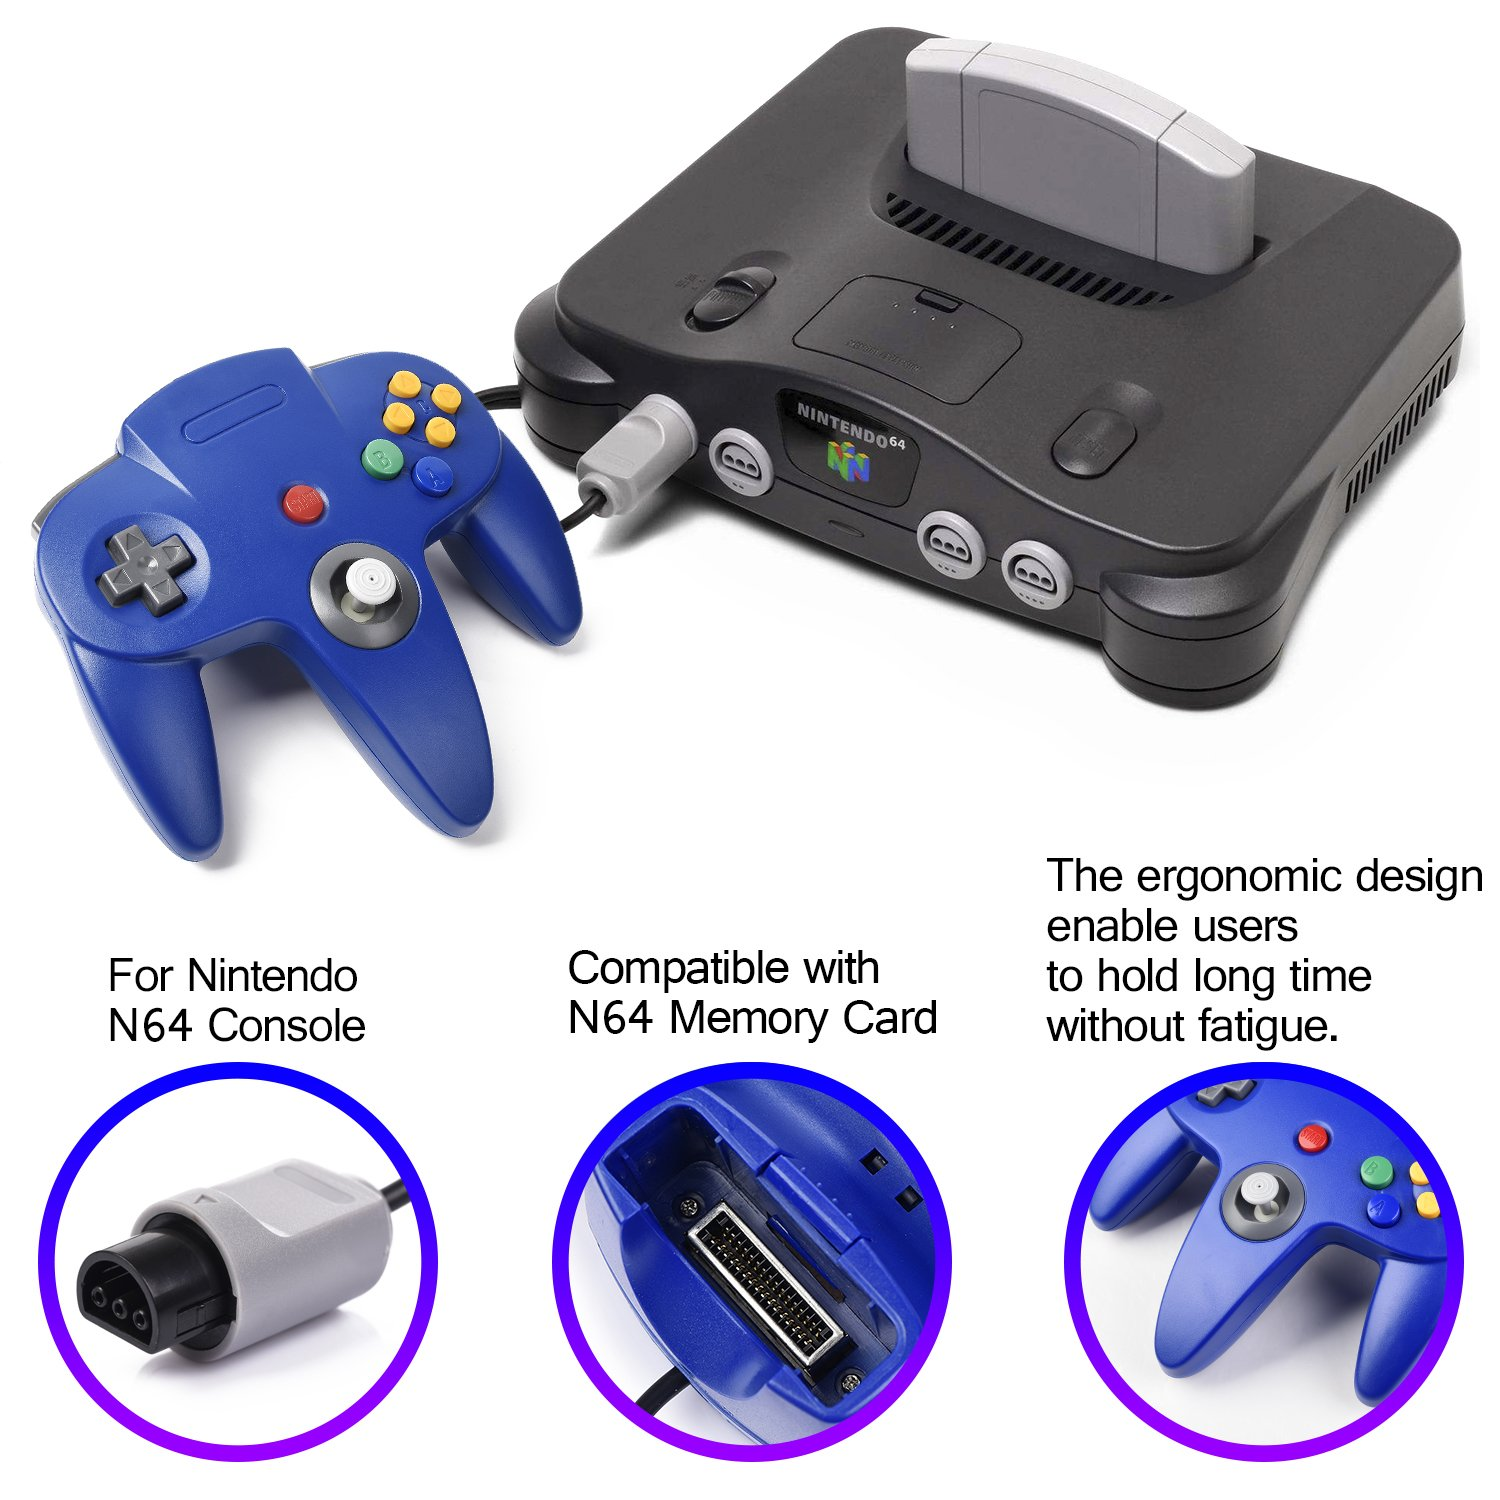 2xClassic N64 Controller,kiwitata Retro Wired Gamepad Controller Joystick for N64 Console Video Games System Red+Blue by kiwitata (Image #5)